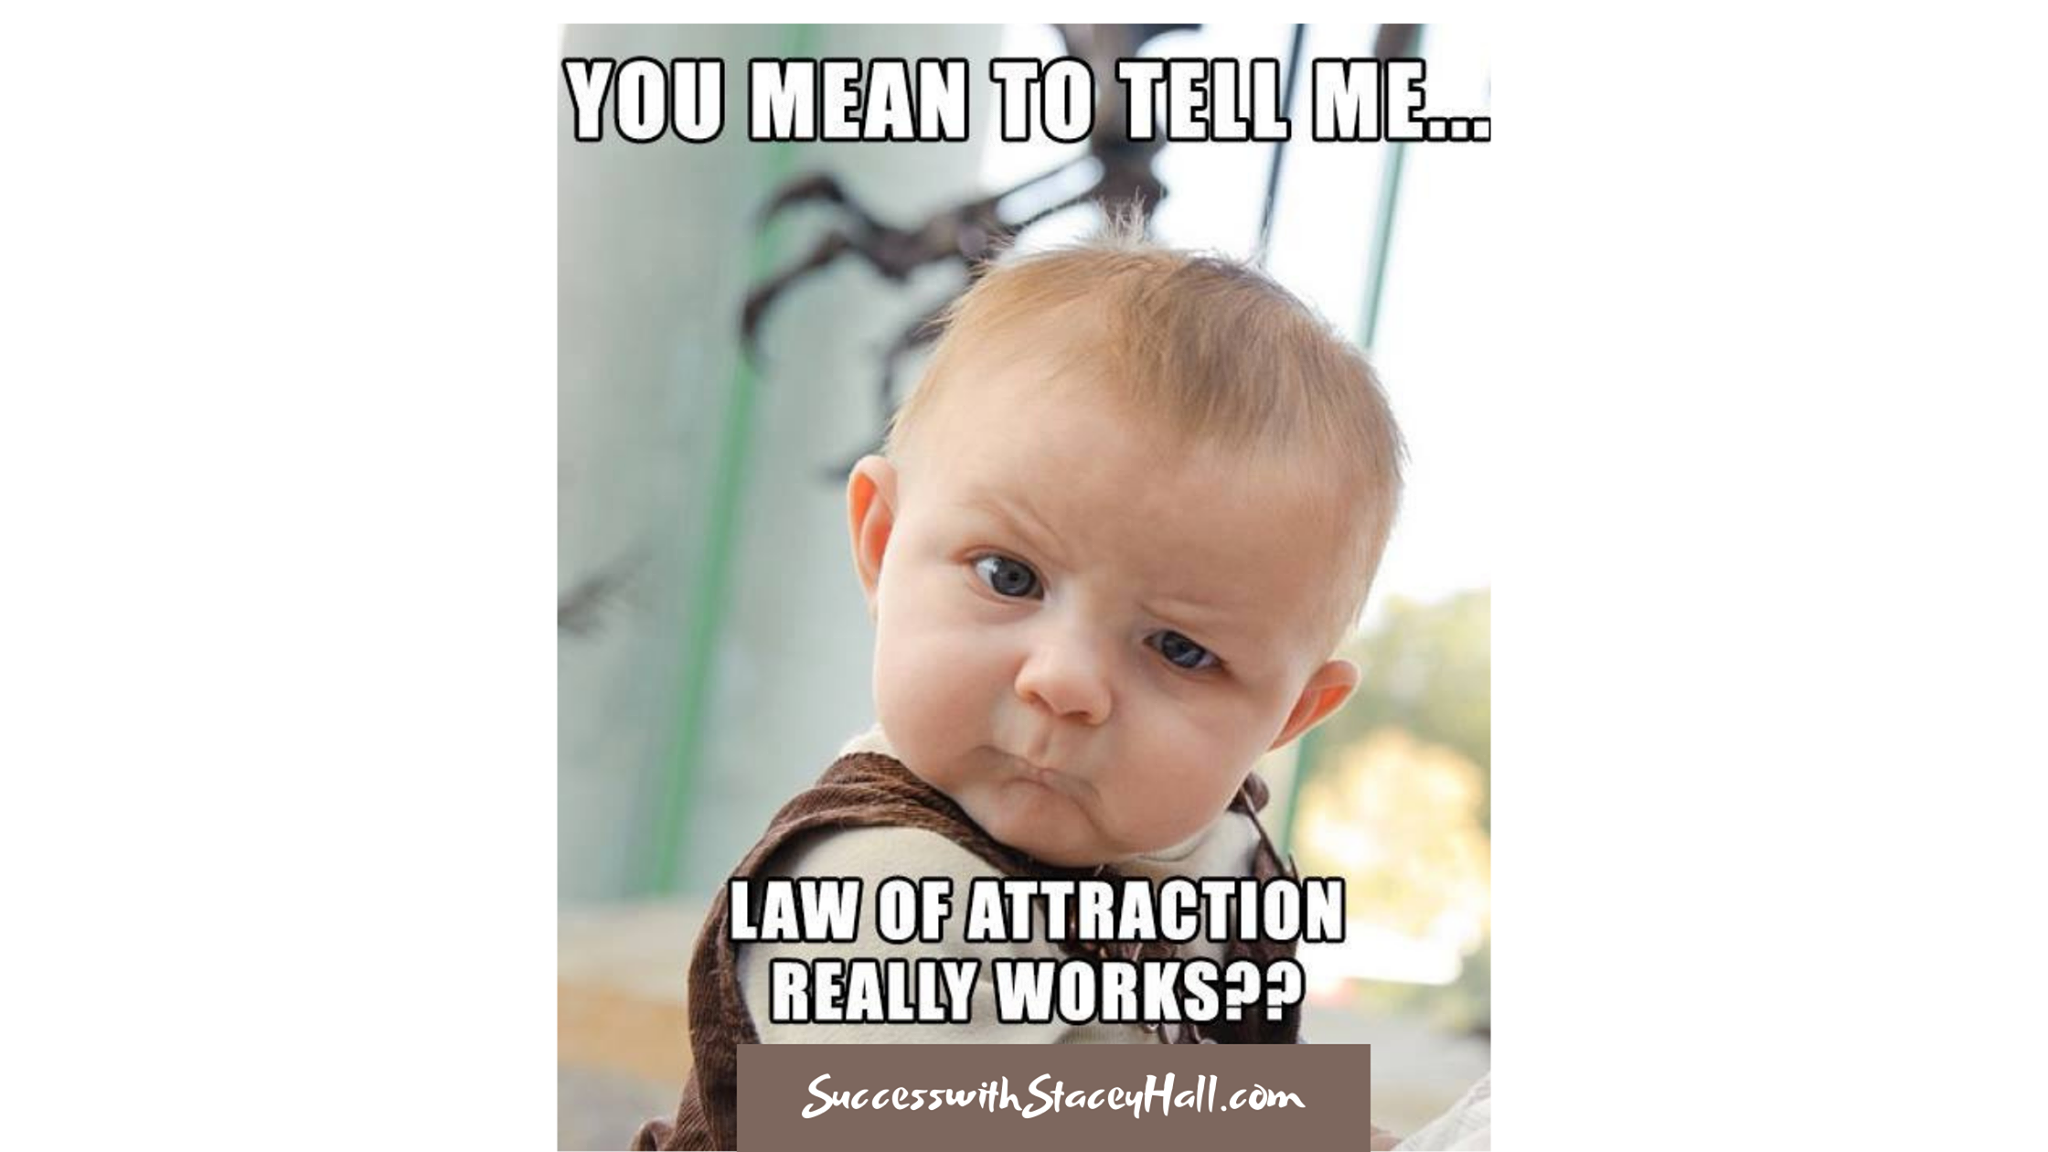 You mean Law of Attraction Really Works